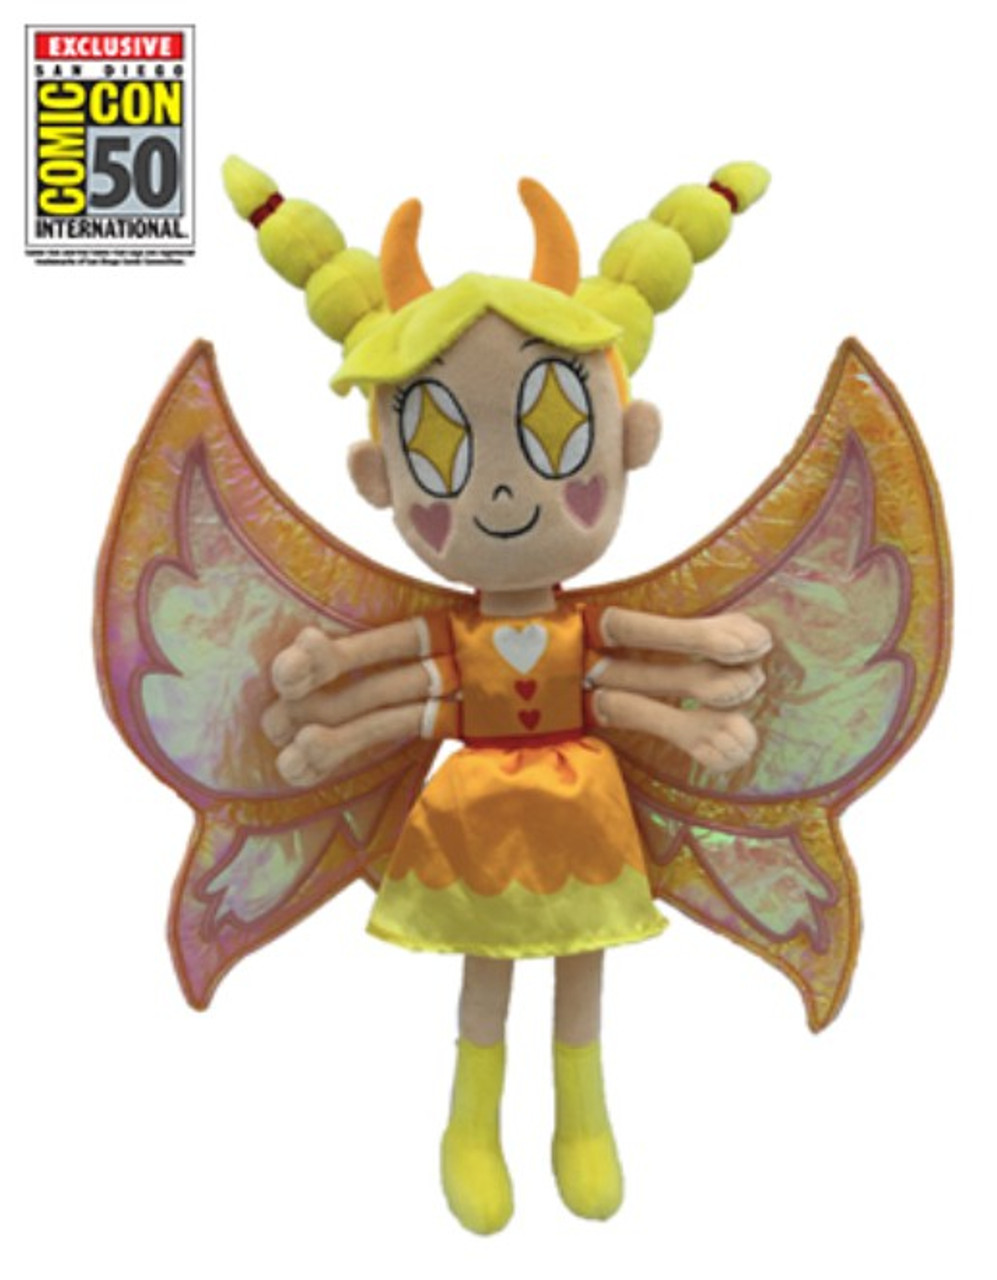 Disney Star Vs The Forces of Evil Star Exclusive 12-Inch Plush